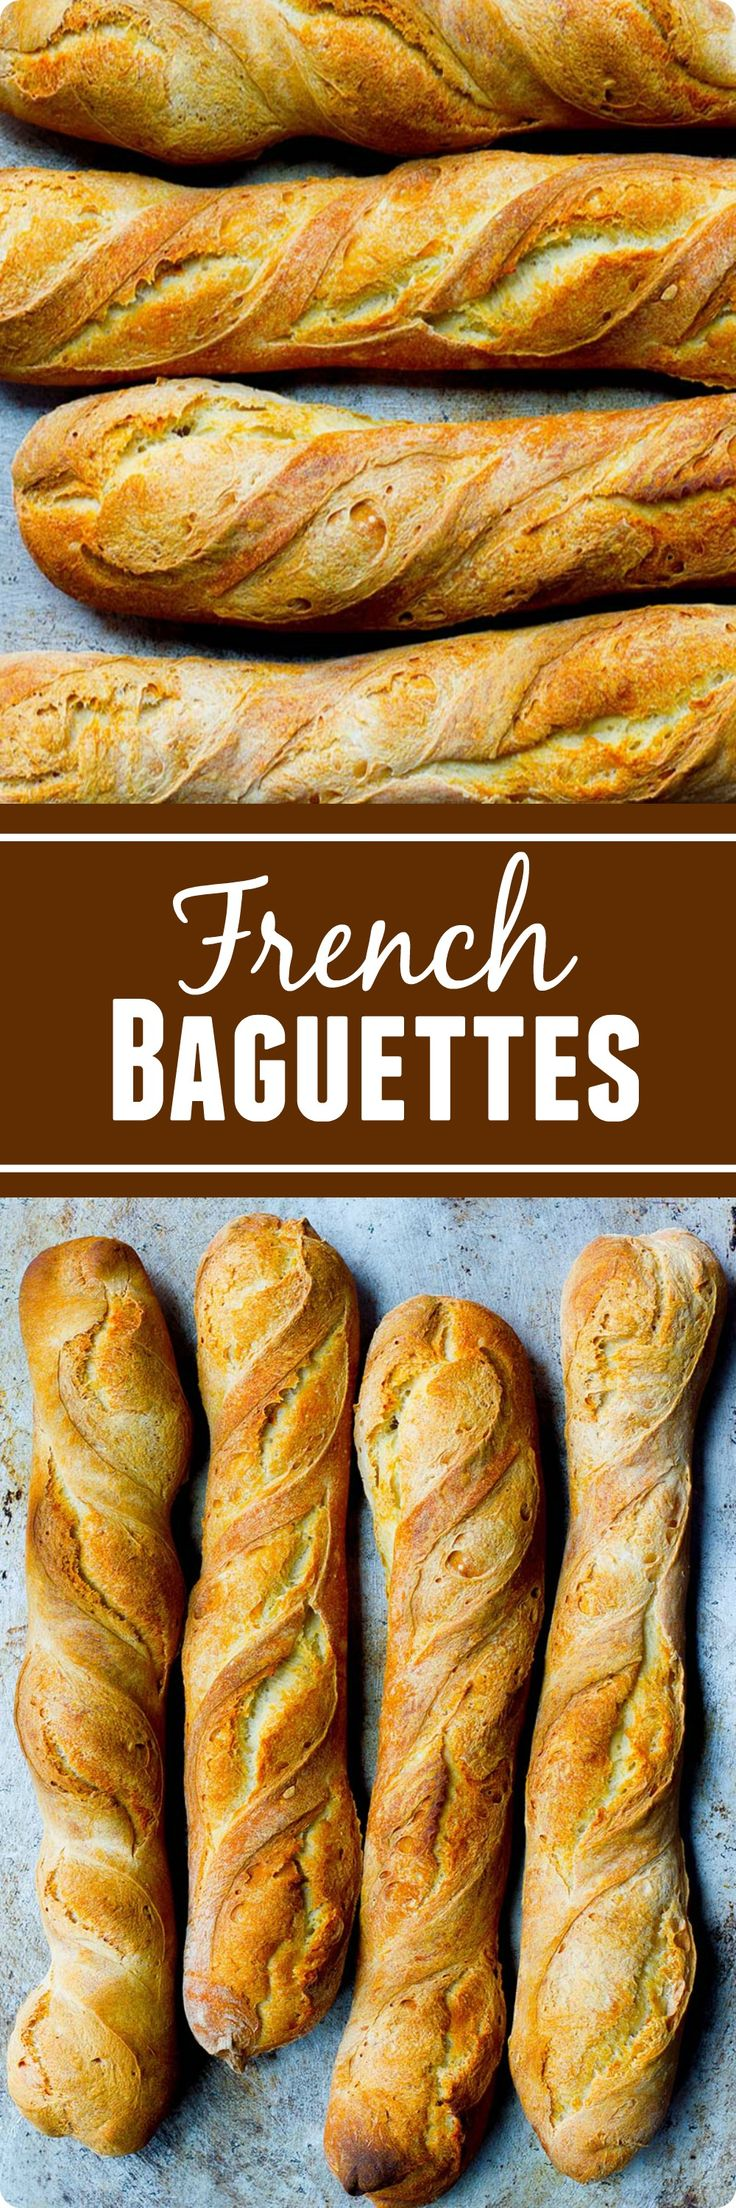 French Baguette | This classic French baguette recipe breaks down the step-by-step process so that you can achieve artisan homemade baguettes! This recipe produces authentic French baguettes with a crusty outside and a fluffy and chewy inside. Find recipe at redstaryeast.com.